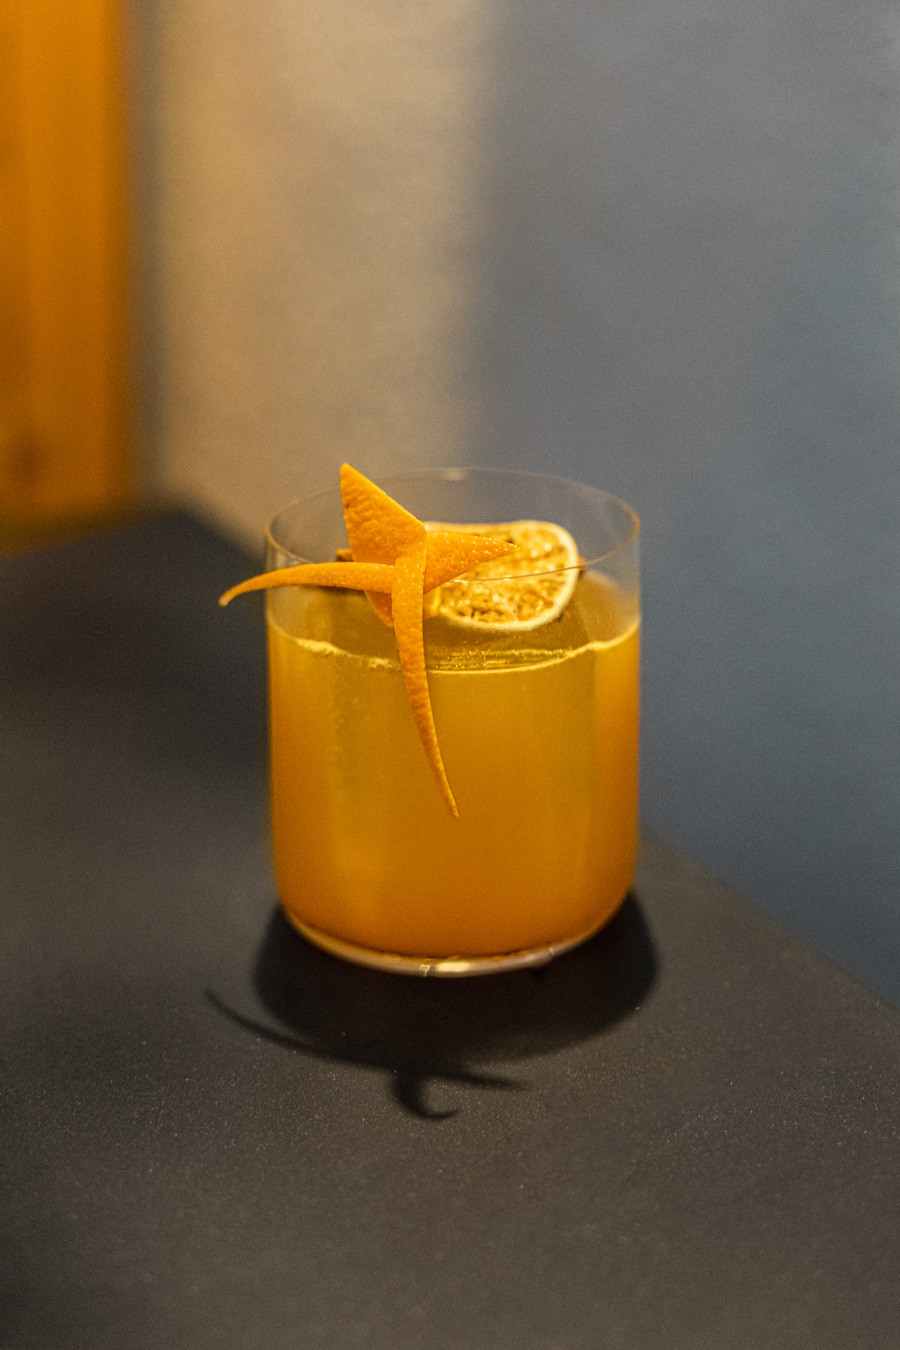 A picture of the Tropical Rum Punch, a cocktail recipe by Audrey Hands